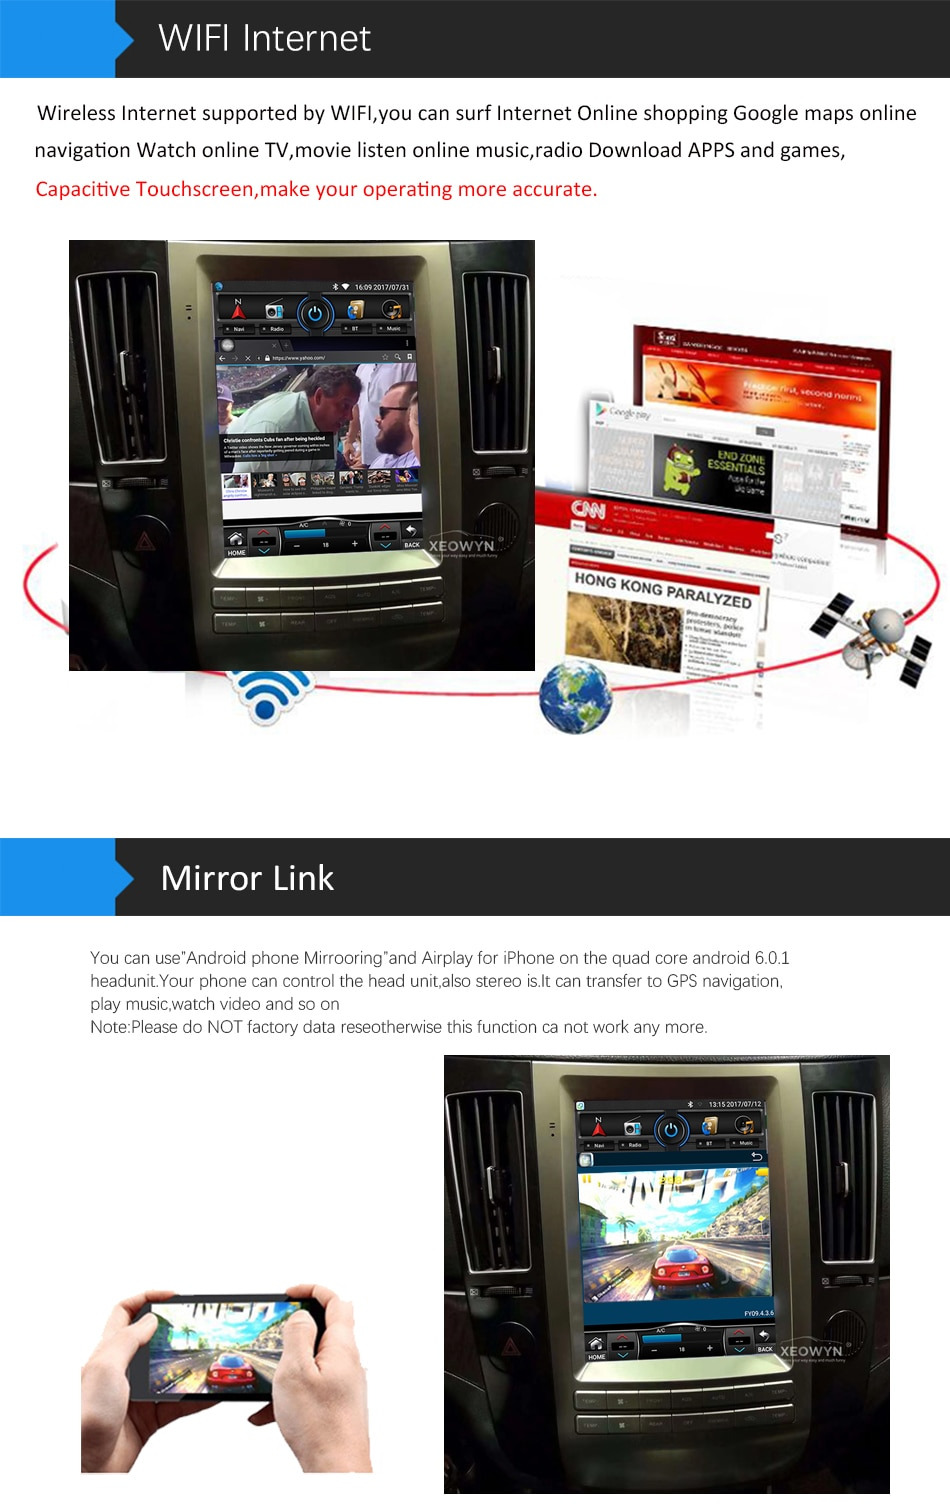 4-wifi and mirror